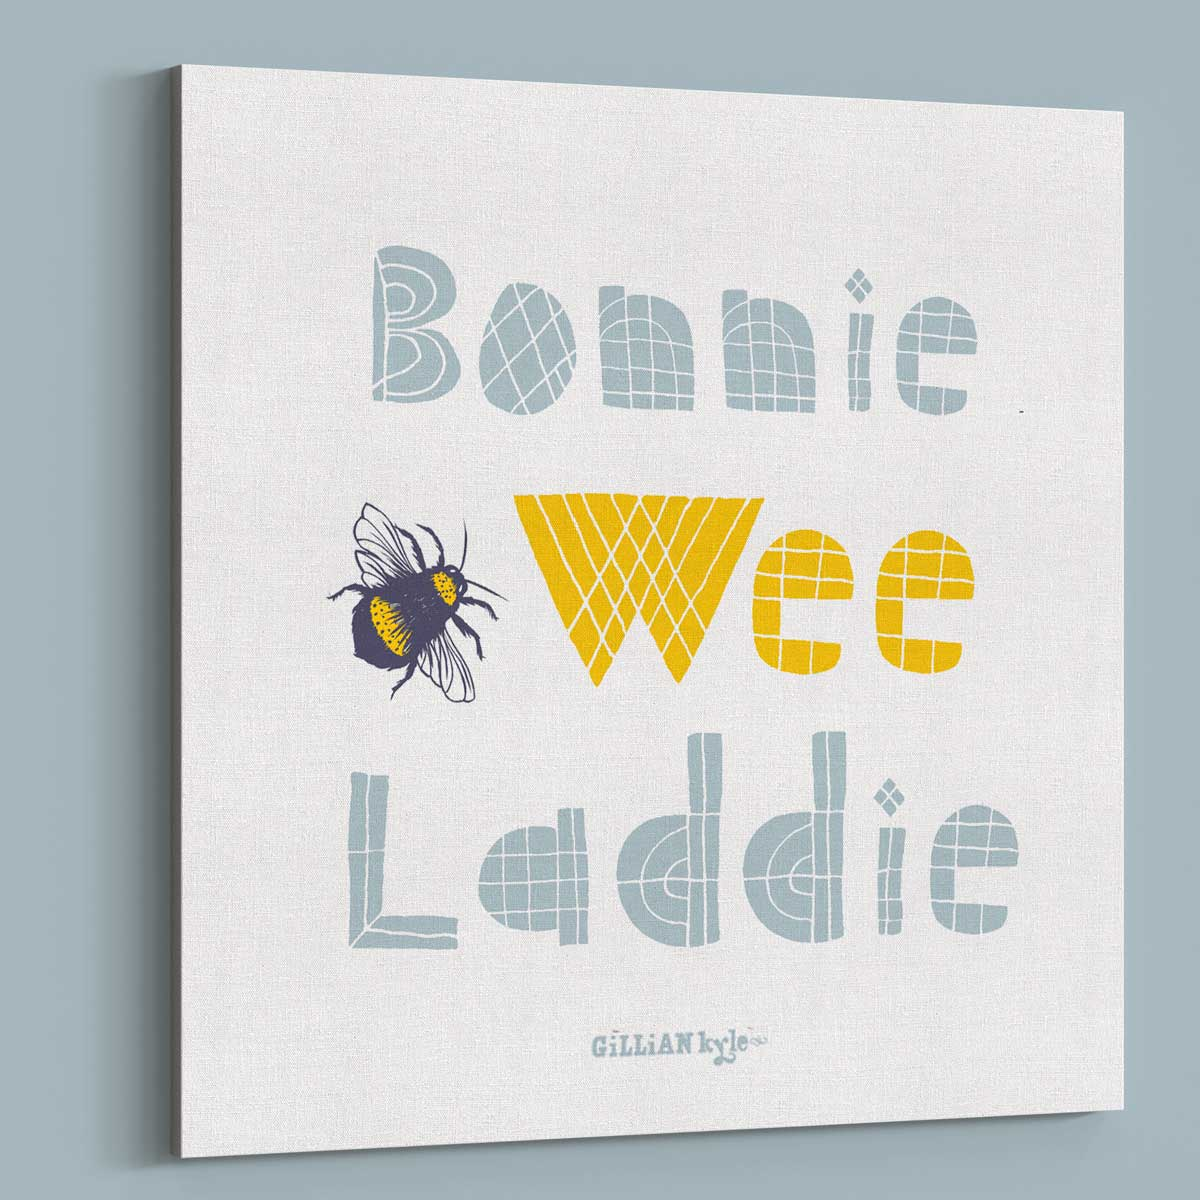 ca42ab6a6 Gillian Kyle Scottish Wall Art Bonnie Wee Laddie Nursery Canvas